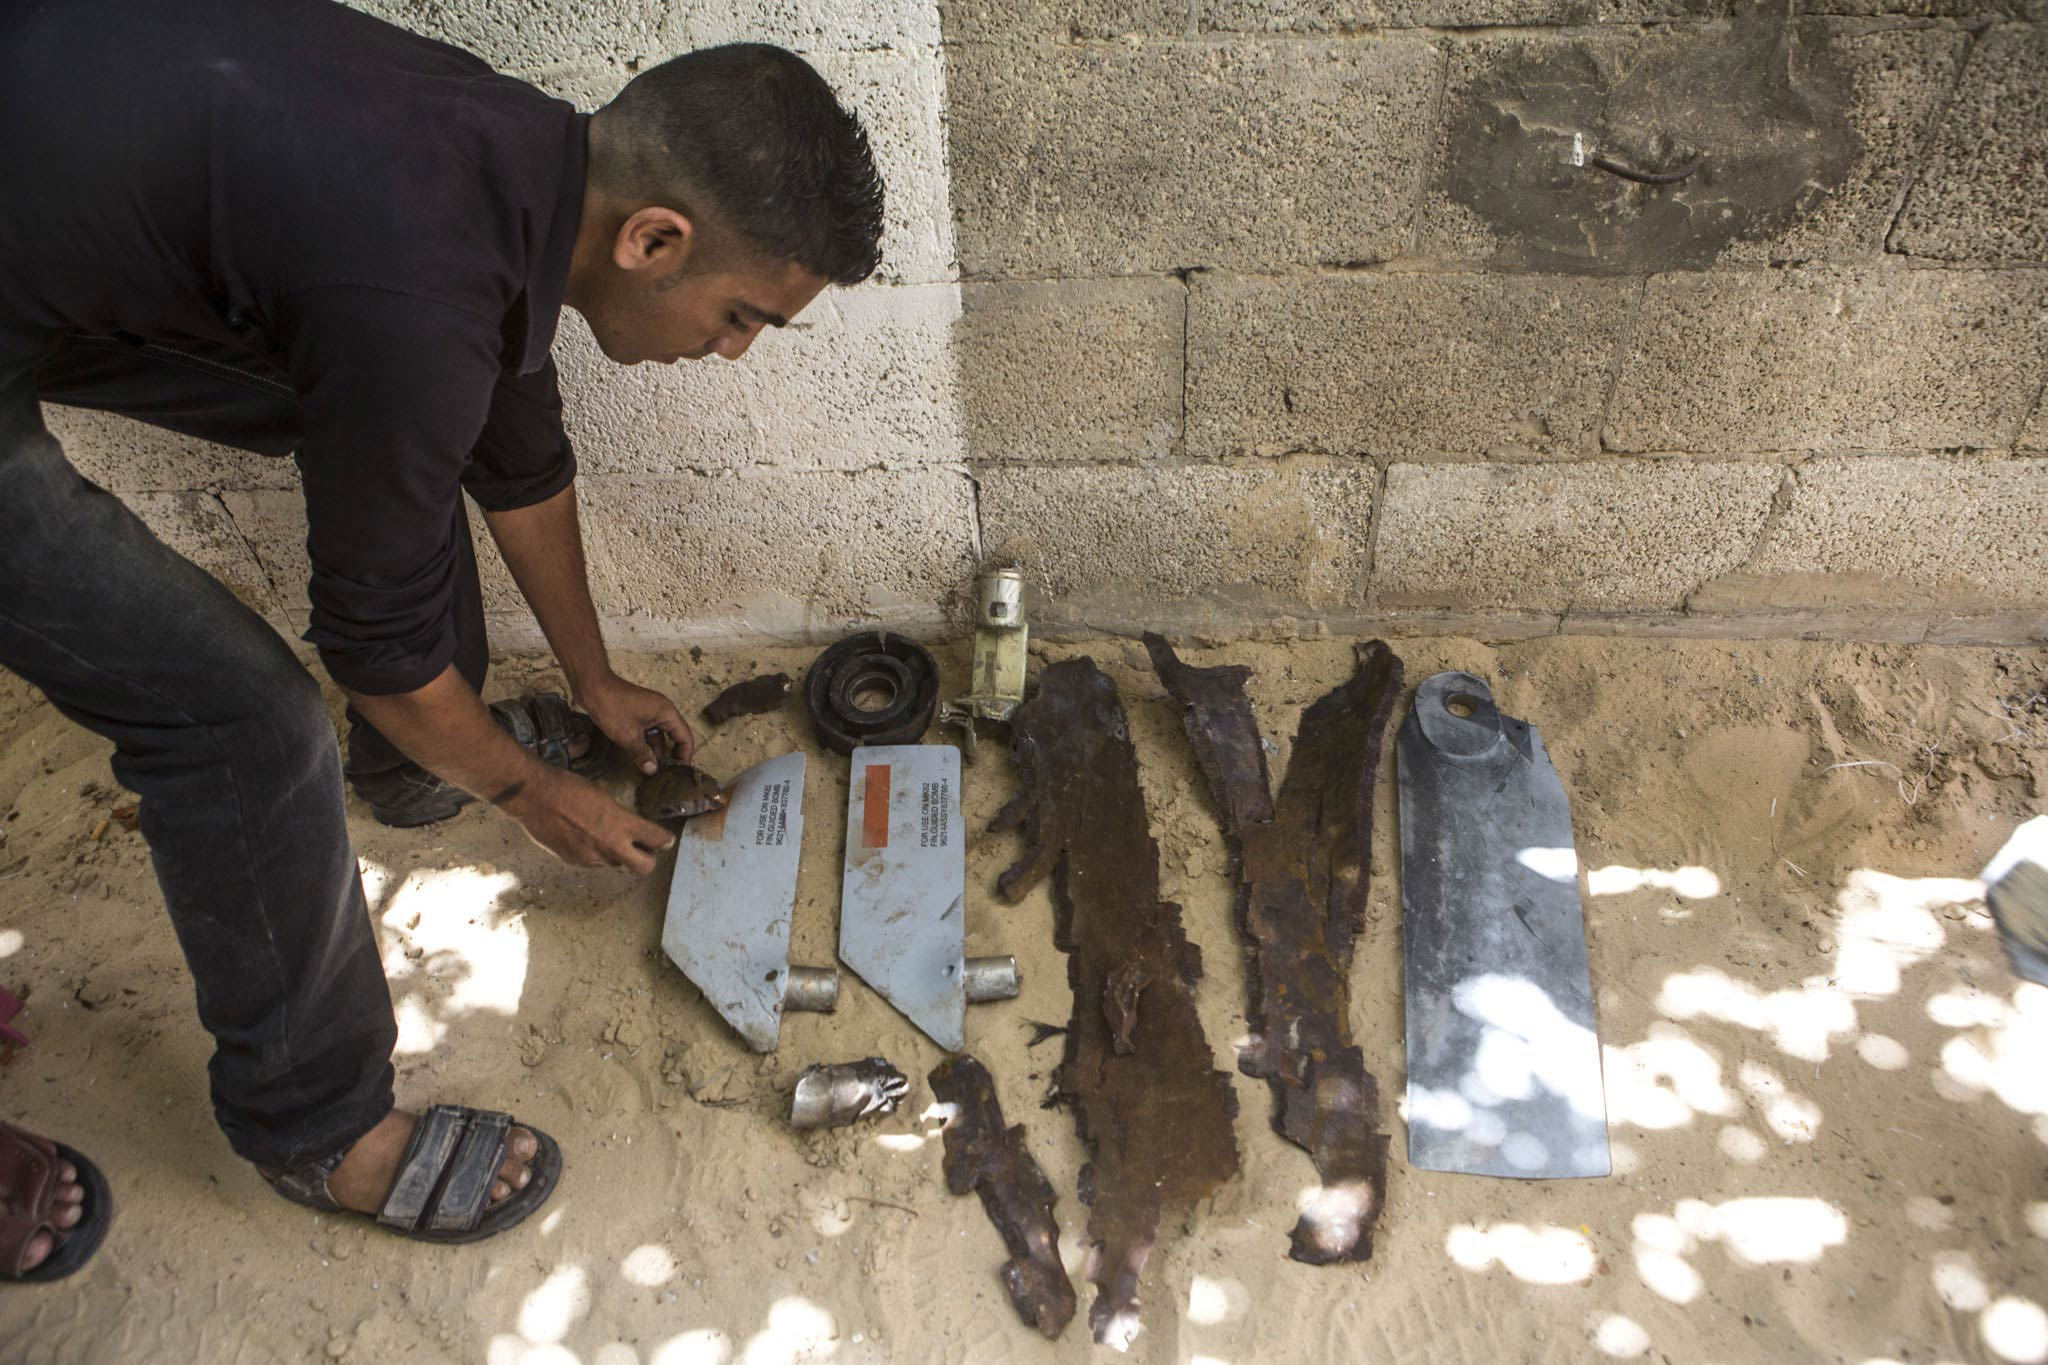 Pieces of the bomb that was dropped on the al-Louh family. The two grey elements are the fins of a guided bomb, so-called 'smart bomb'. They help steer it, so that it hits the target precisely – in this case a house with Rafat's sleeping family inside.